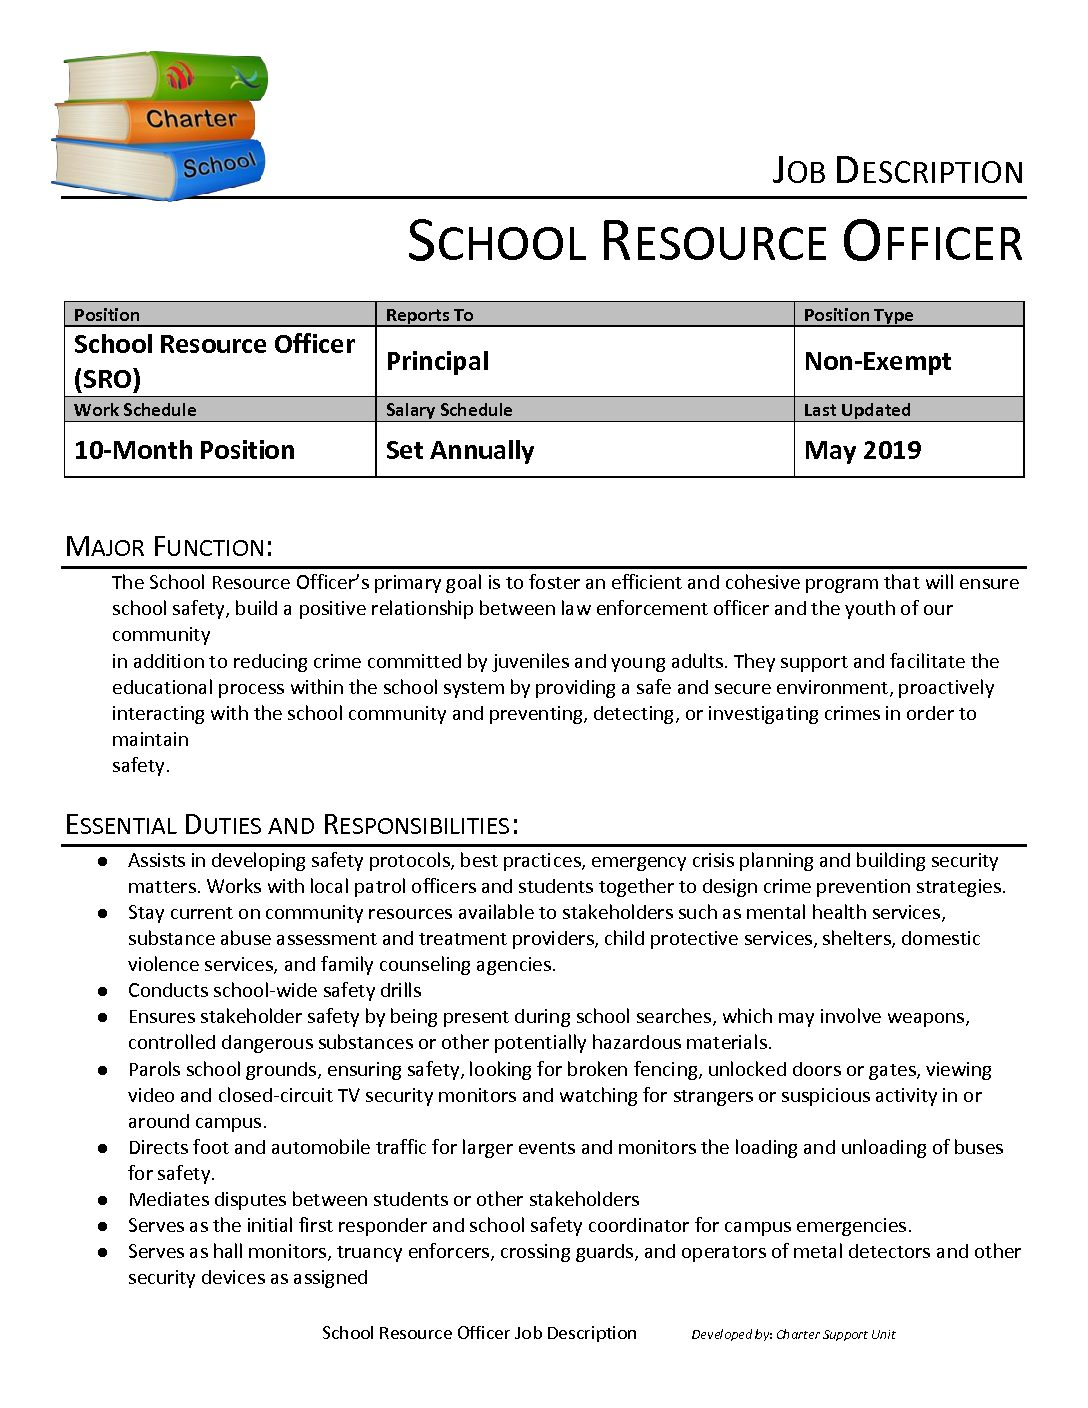 Job Description: School Resource Officer